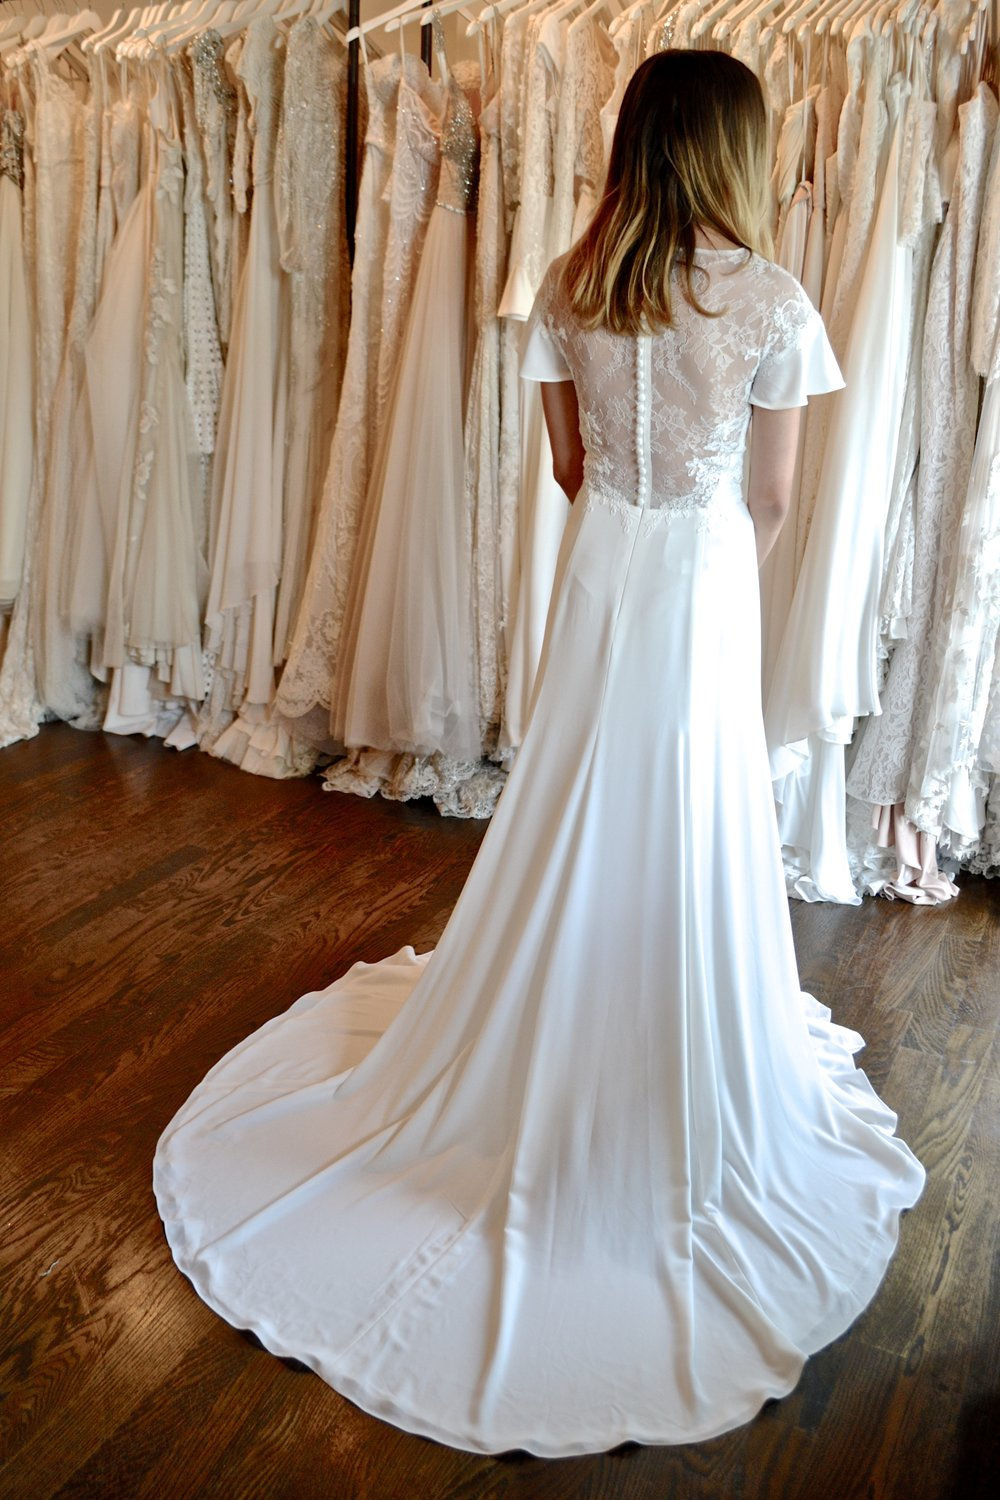 Nashville Trunk Shows — The Dress Theory